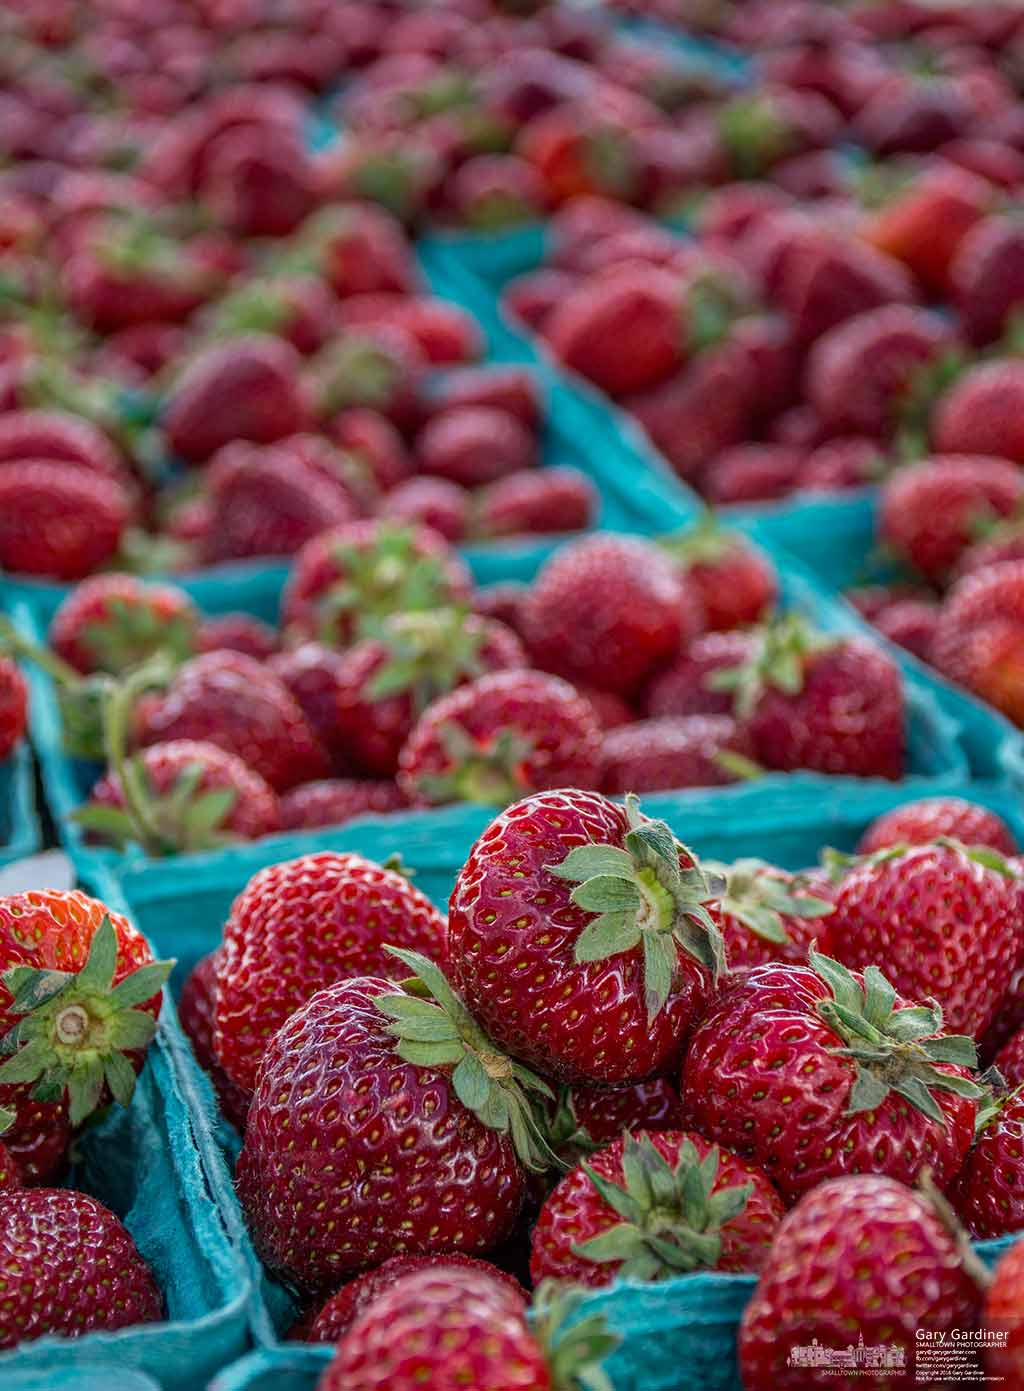 Fresh strawberries fill a table at the Doran's Farm spot in the Uptown Westerville farmers market as an abundance of early season fruits and vegetable begin to arrive at the weekly market. My Final Photo for June 1, 2016.